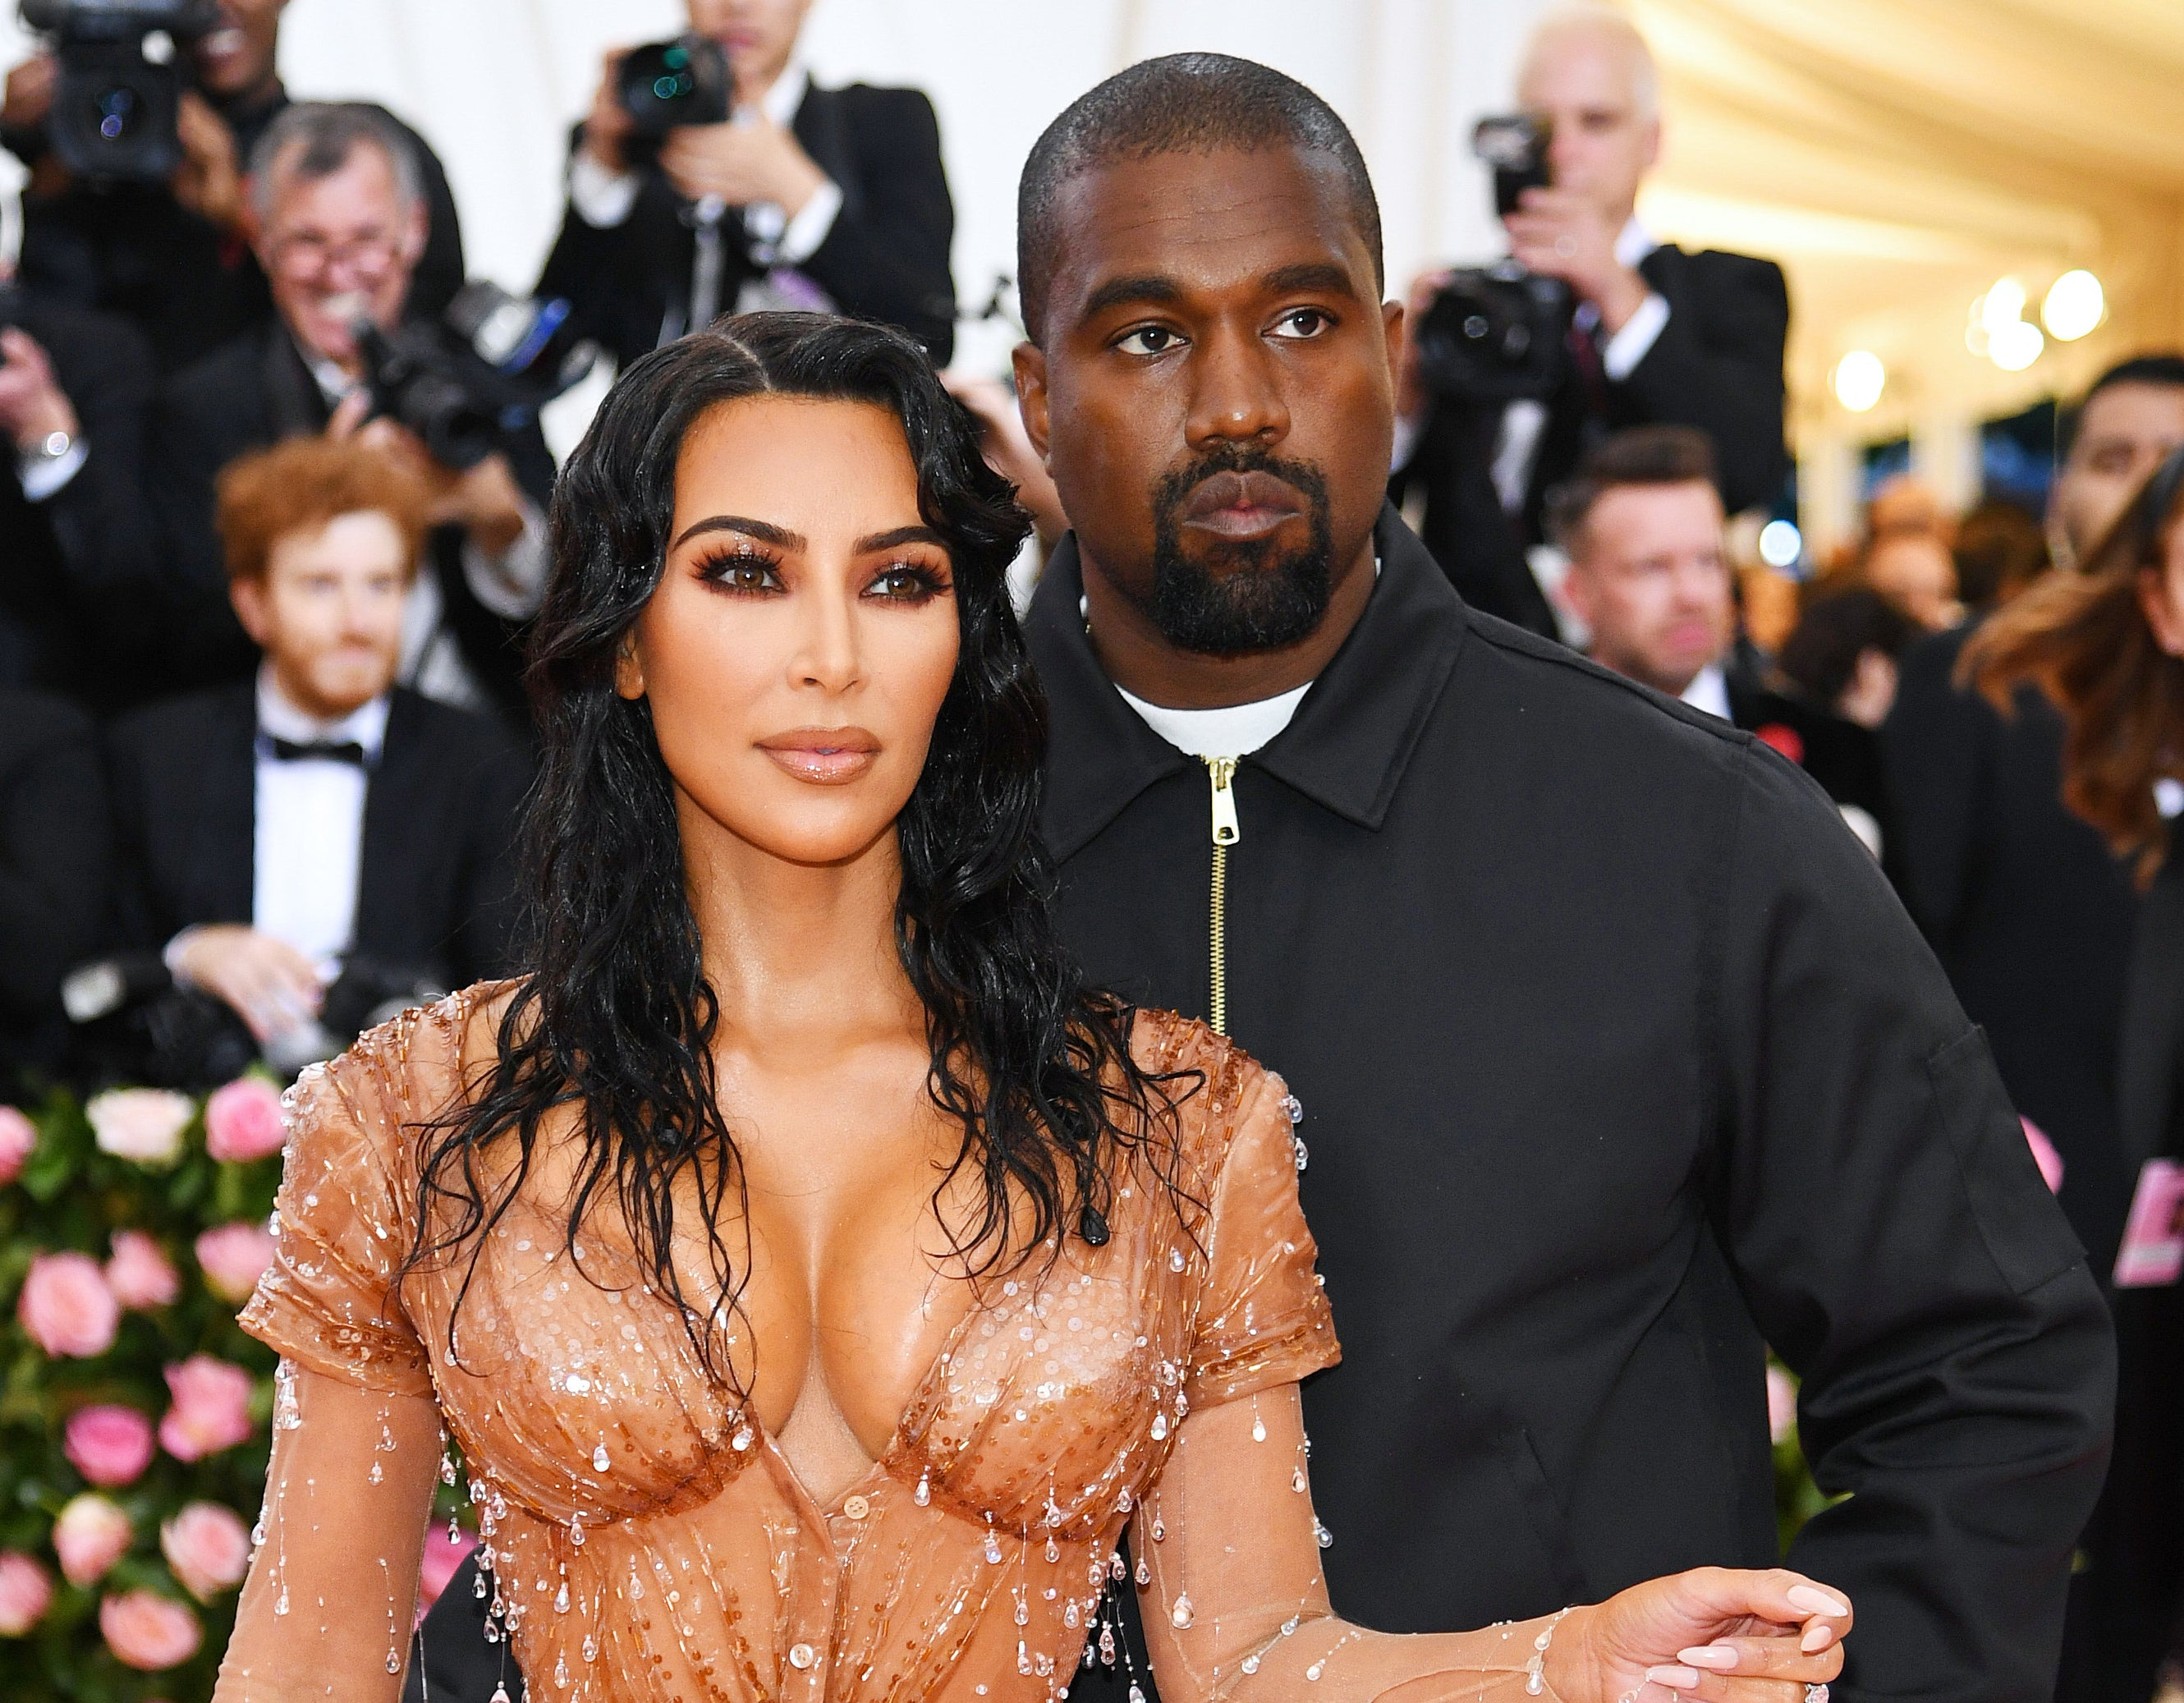 Kim and Kanye attend the Met Gala together